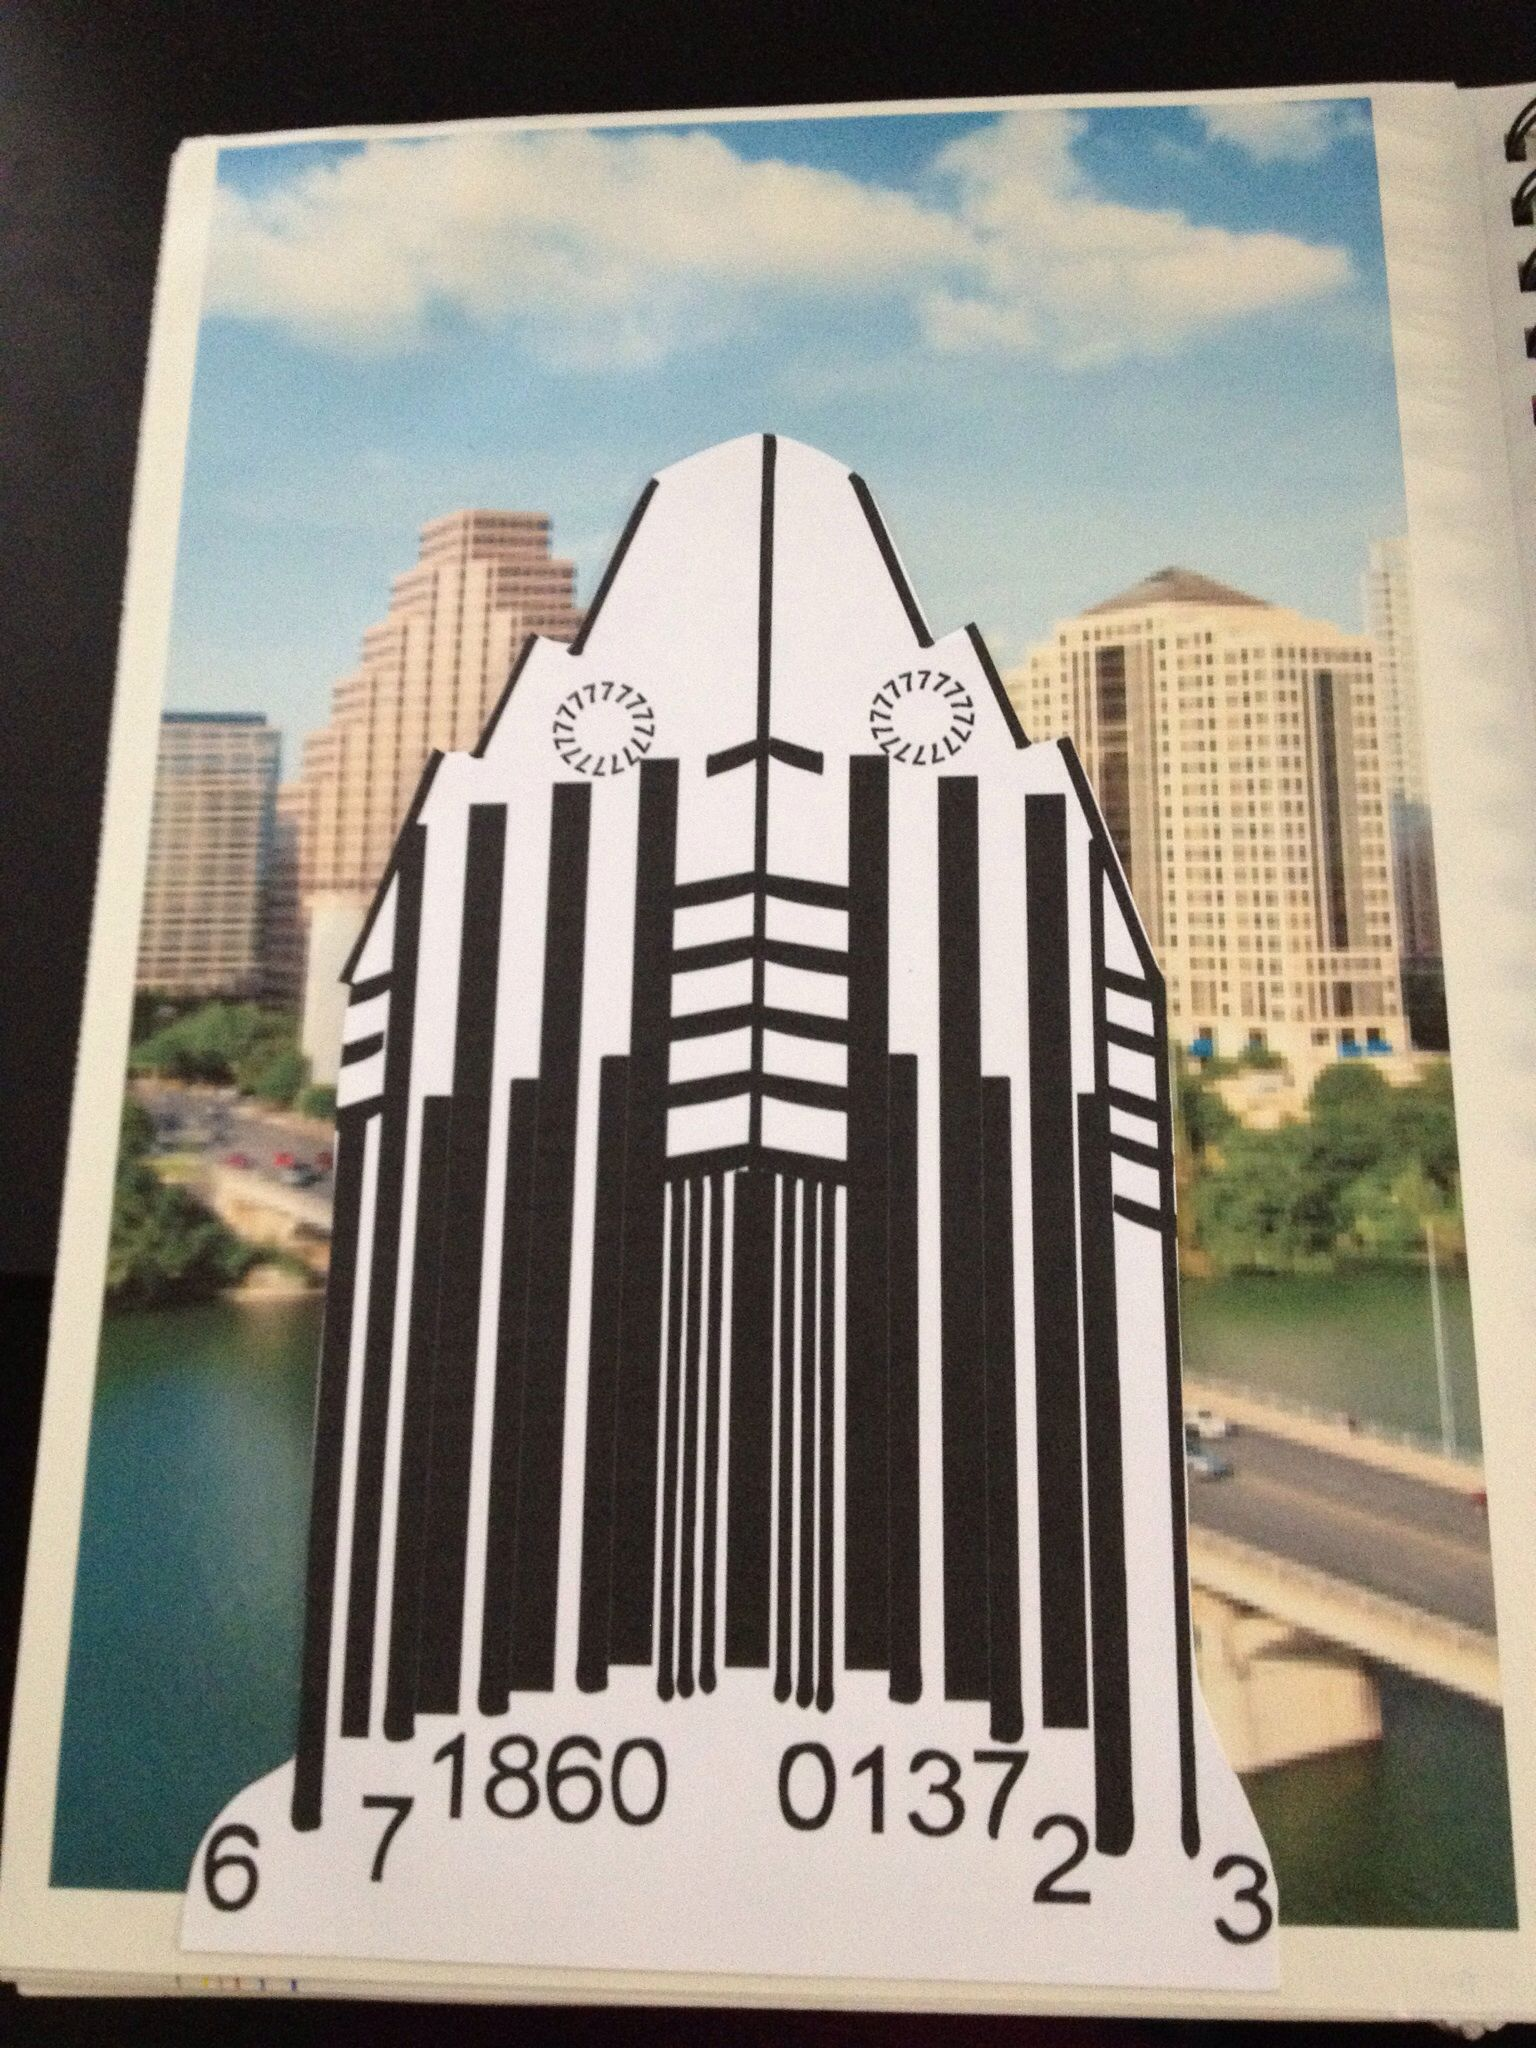 My Idea Journal from Concept Design class: Creative Barcodes